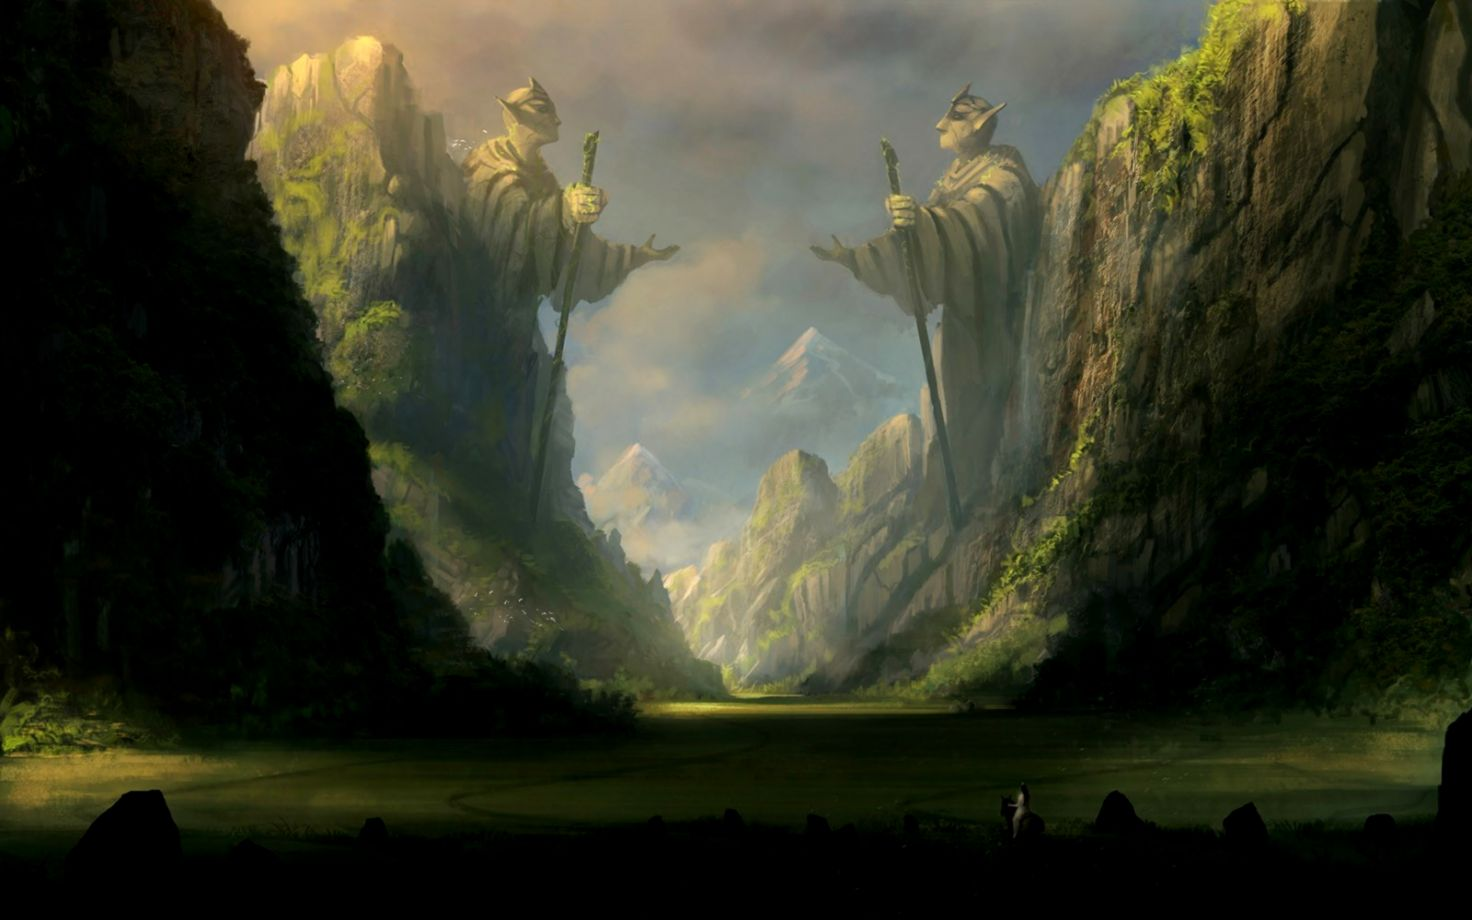 Fantasy Mountain Art